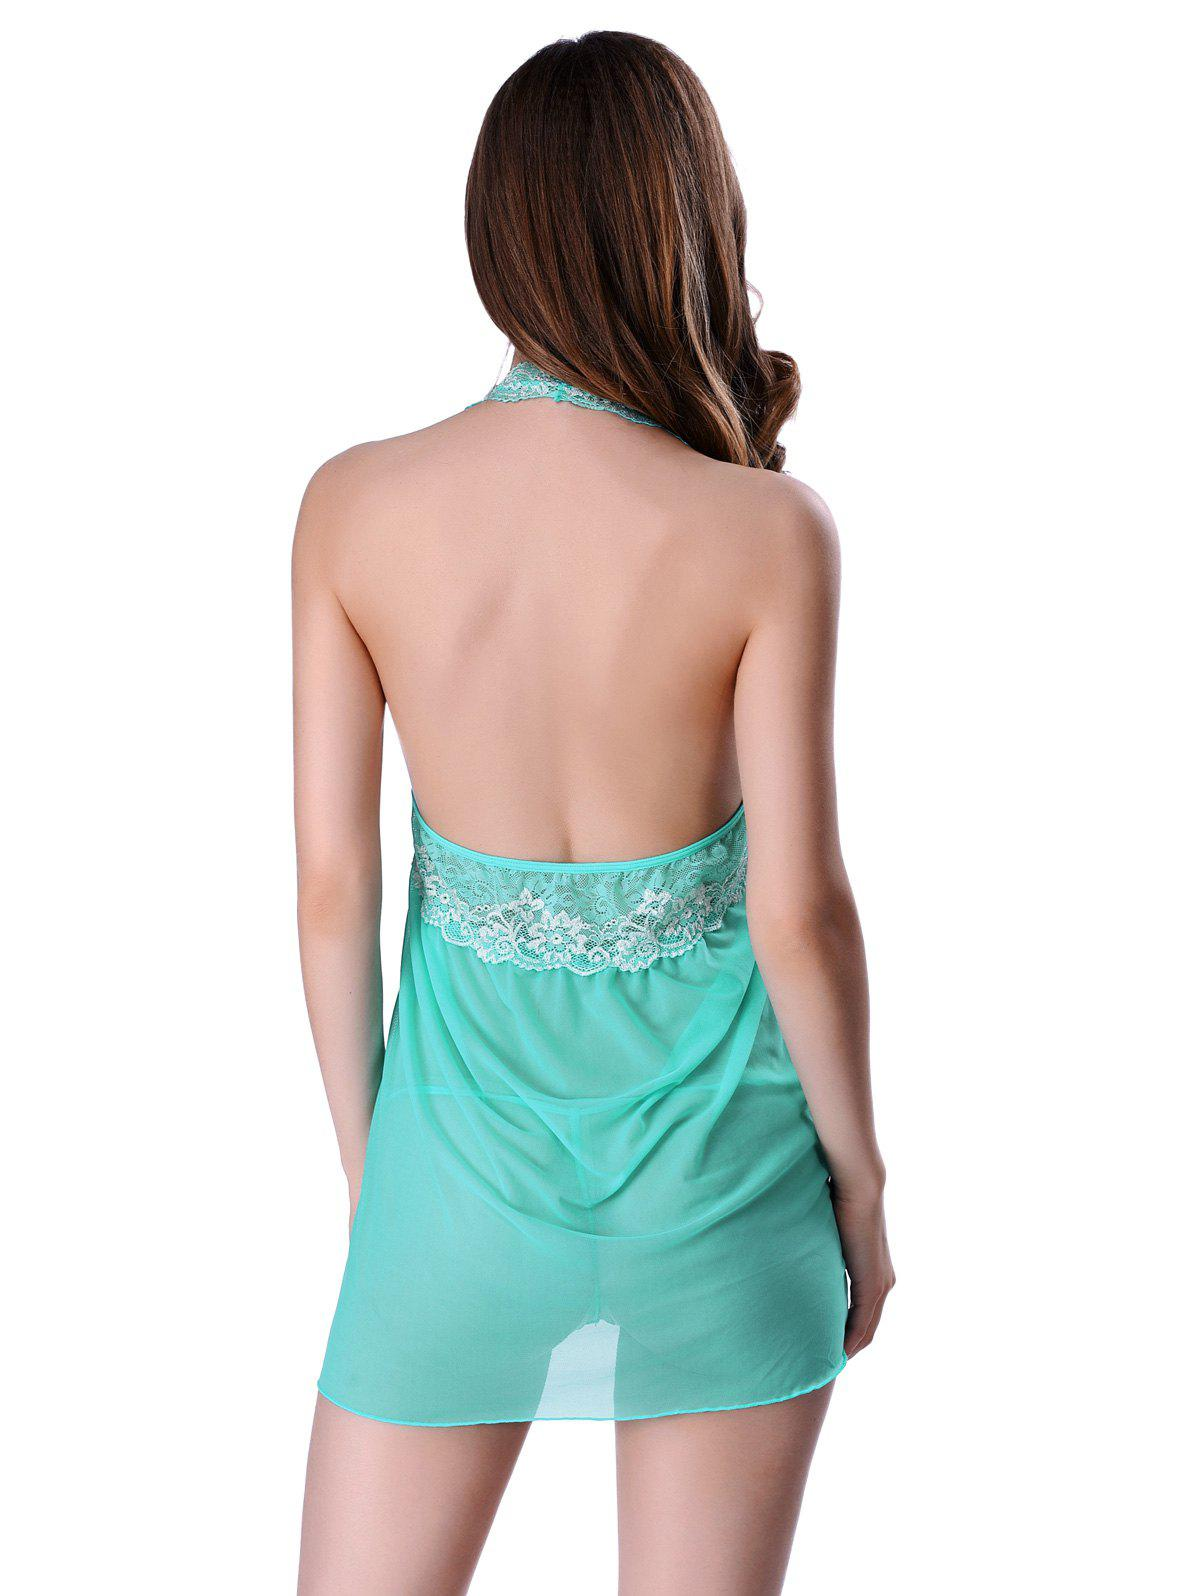 Alluring T-Back and Halter Backless Lace Spliced Sheer Babydoll For Women - GREEN S